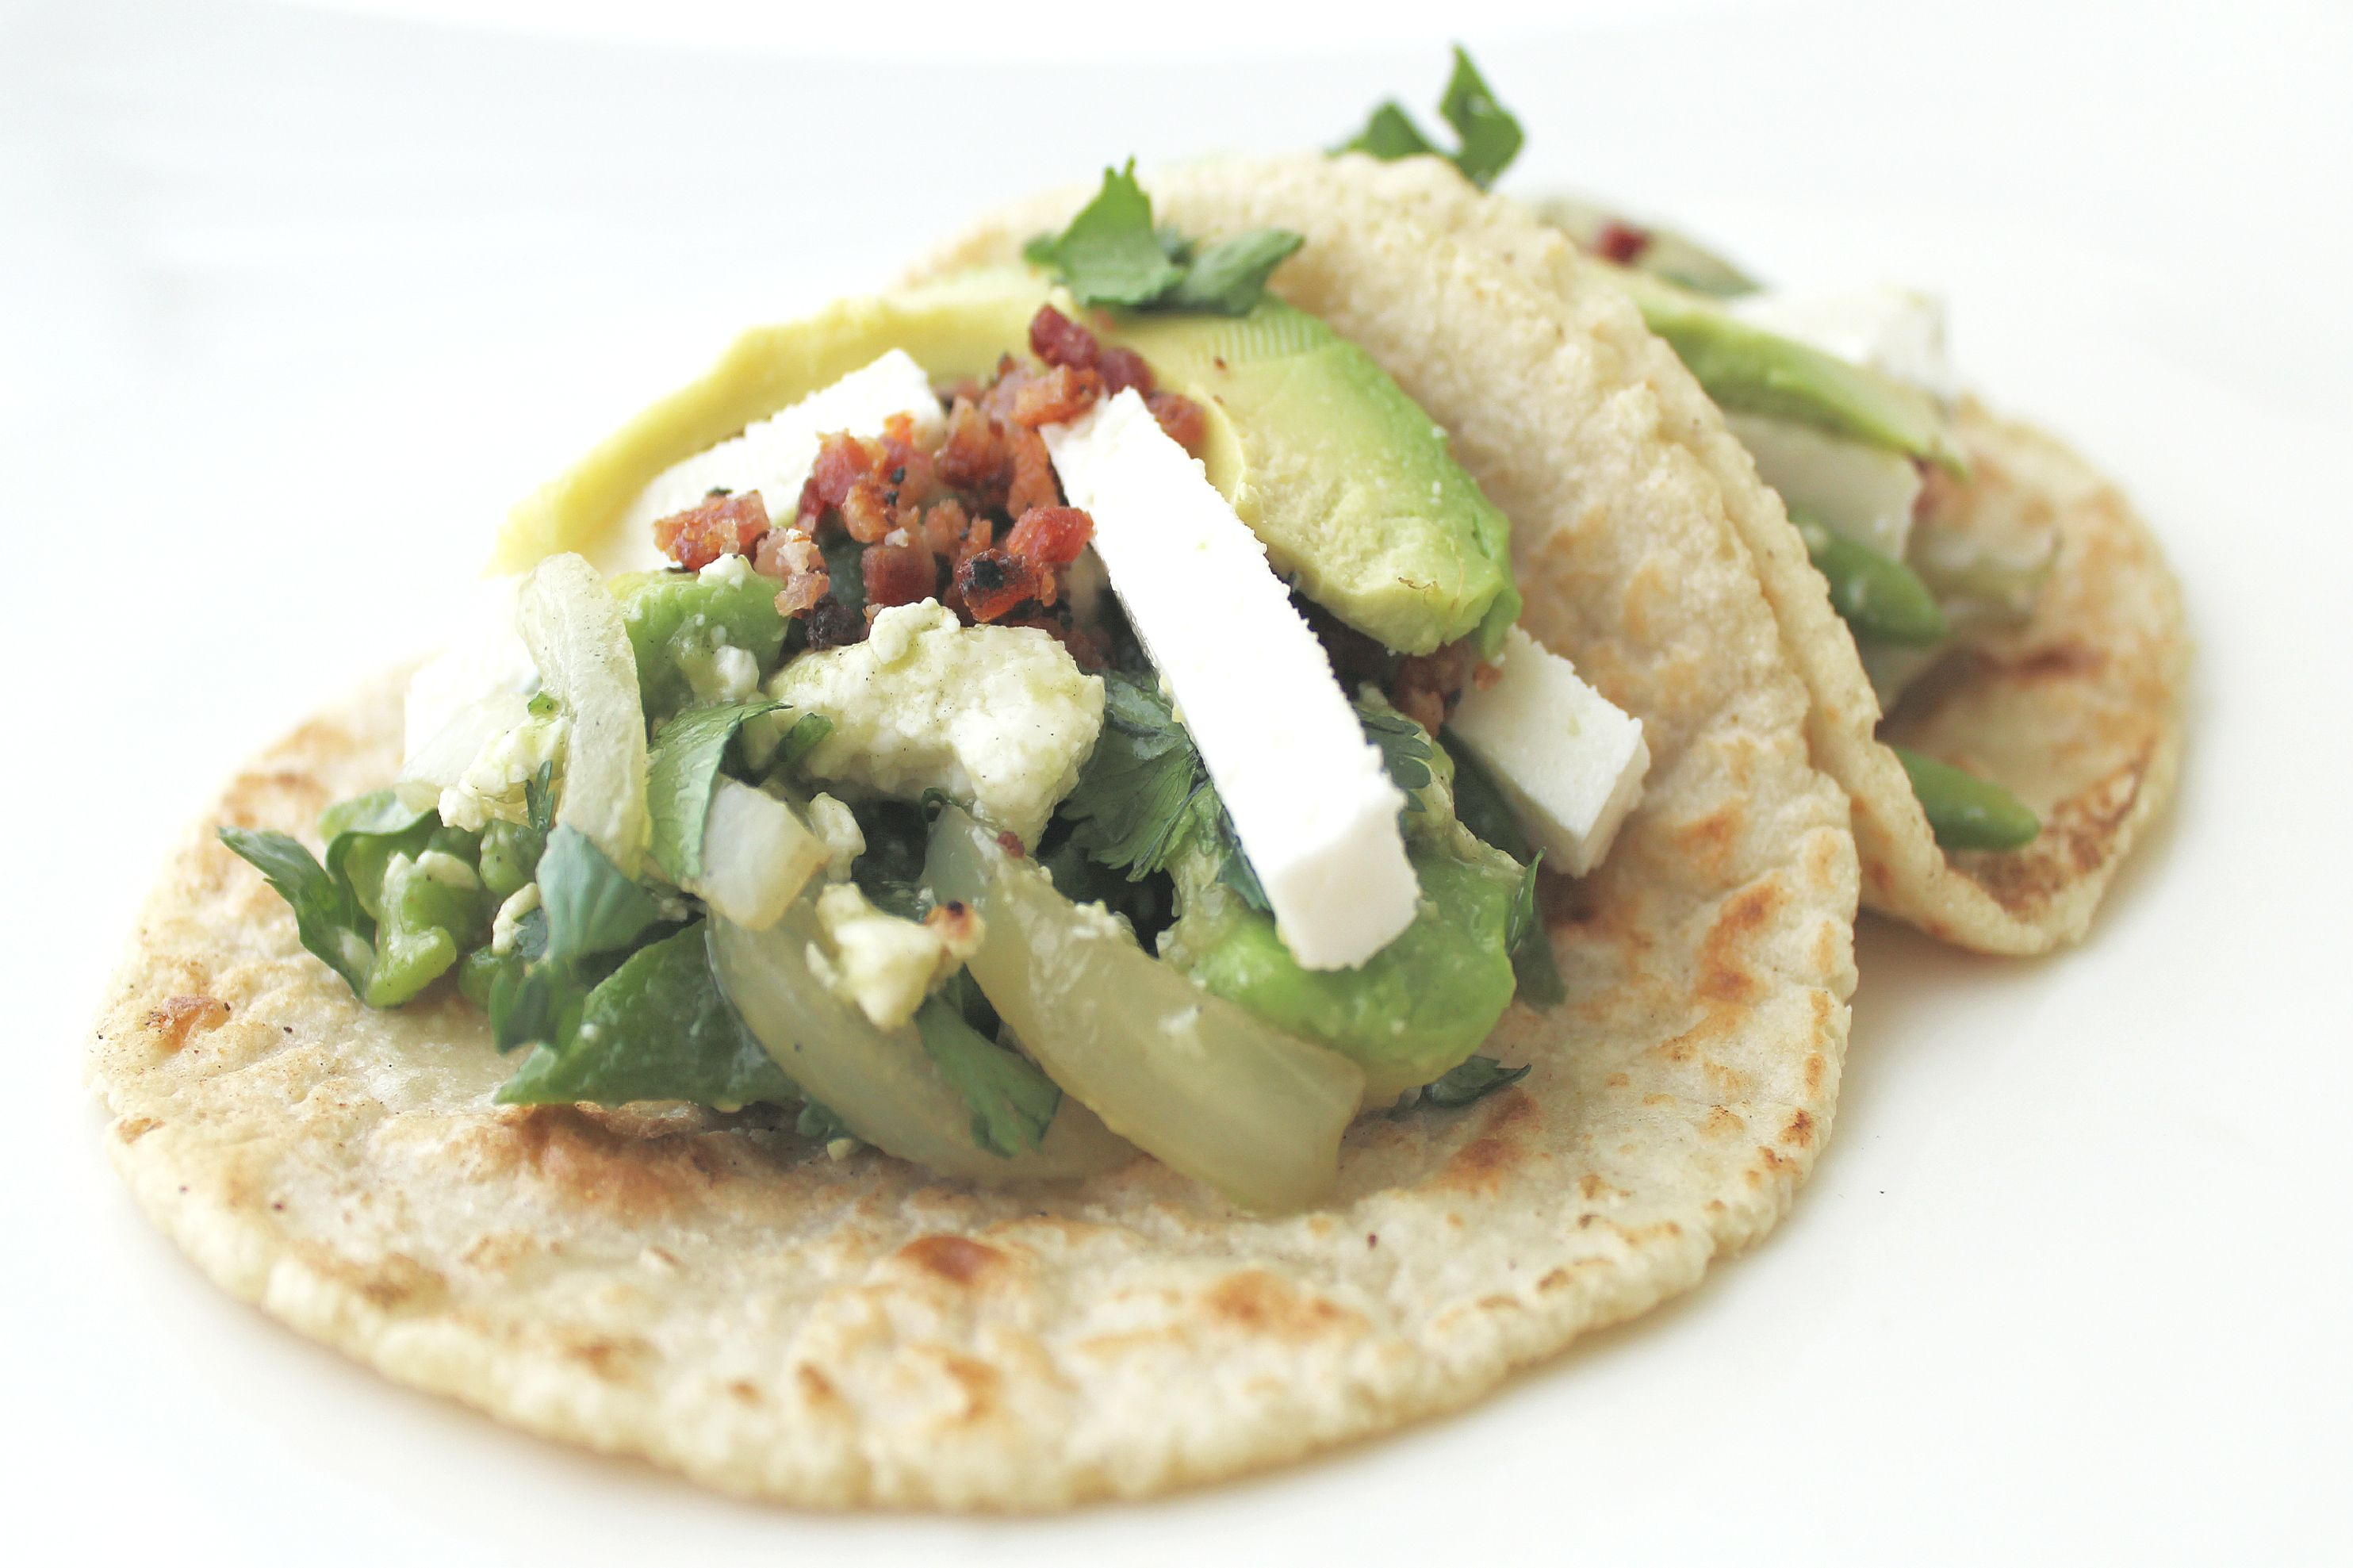 """Introducing our latest monthly special """"Taco El Desperado"""". Grilled rajas de jalapeño, queso panela, caramelized onions and ripe avocado topped with pepper encrusted bacon bits. Enjoy spicy, smoky flavors of Old Mexico in each bite. Available starting at our next food truck stop on Friday.  More info: http://www.sohotaco.com/2015/04/01/introducing-taco-el-desperado-our-april-taco-of-the-month #tacocatering #ocfoodies"""